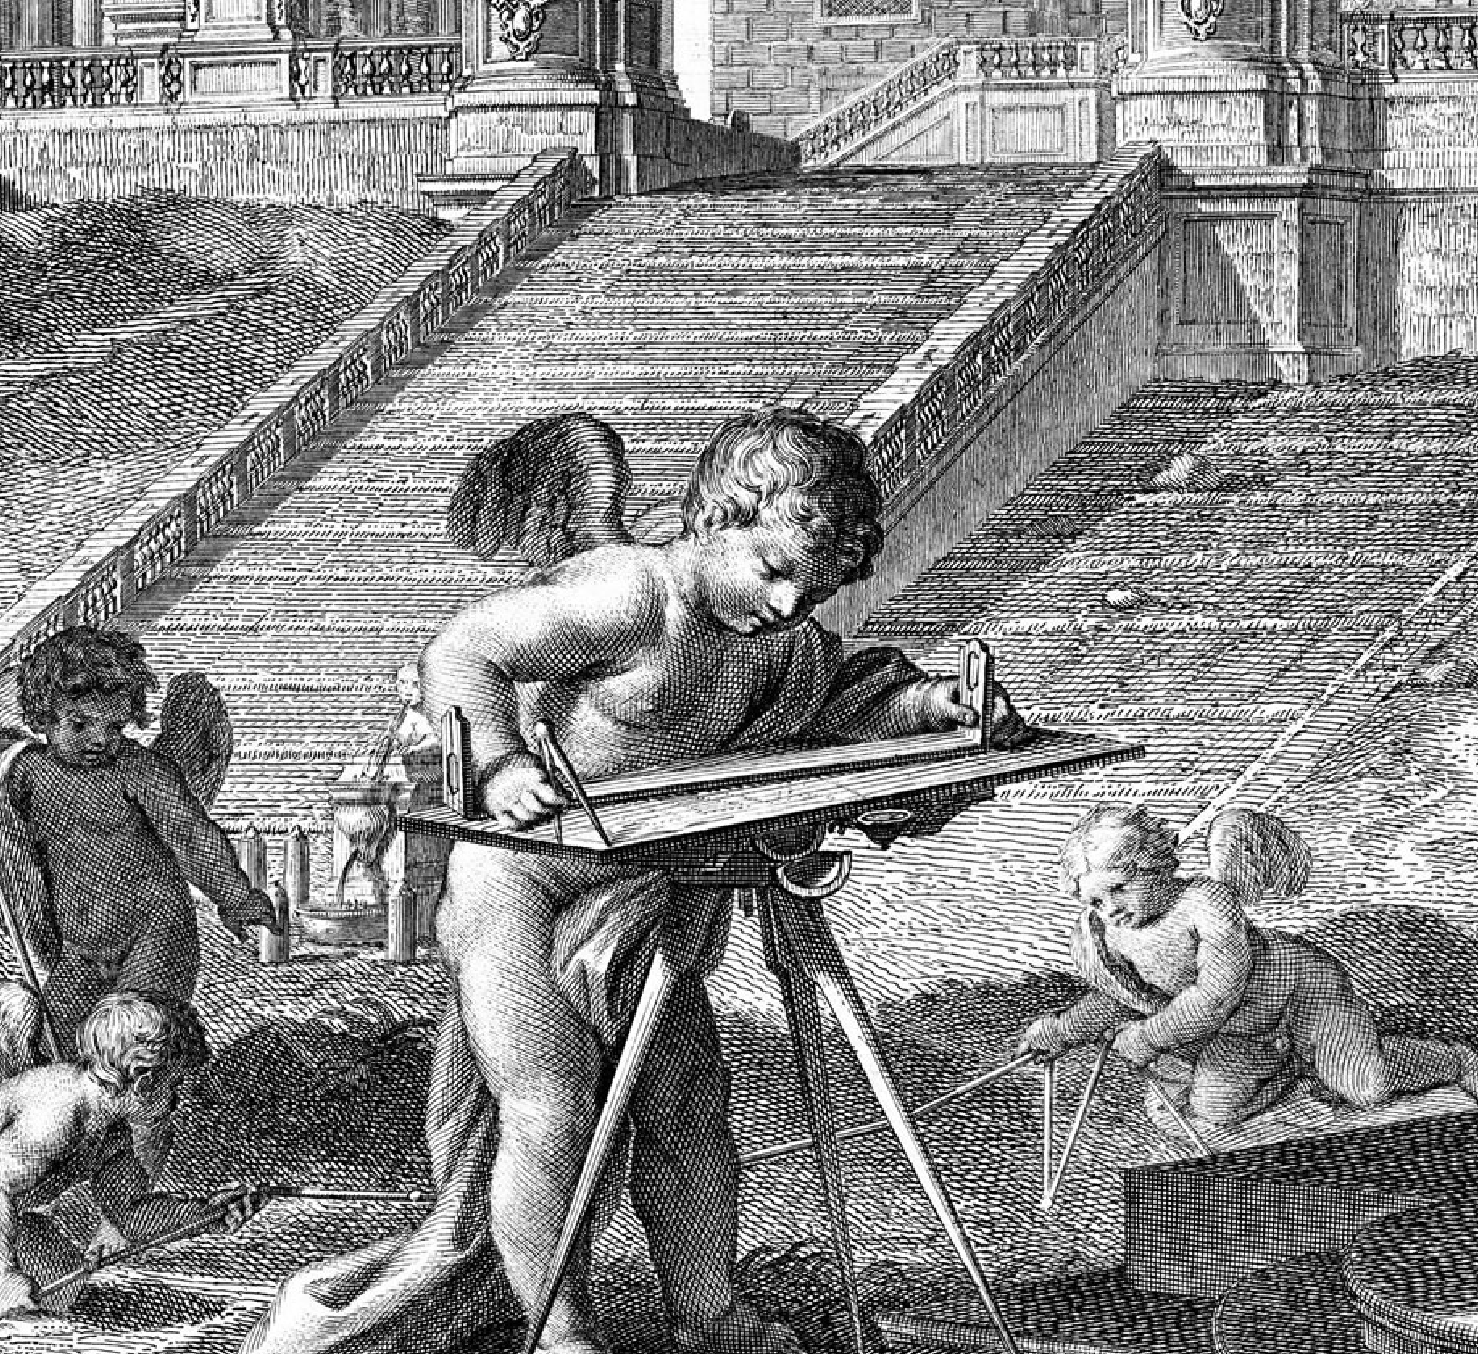 surveyor's tablet and putto